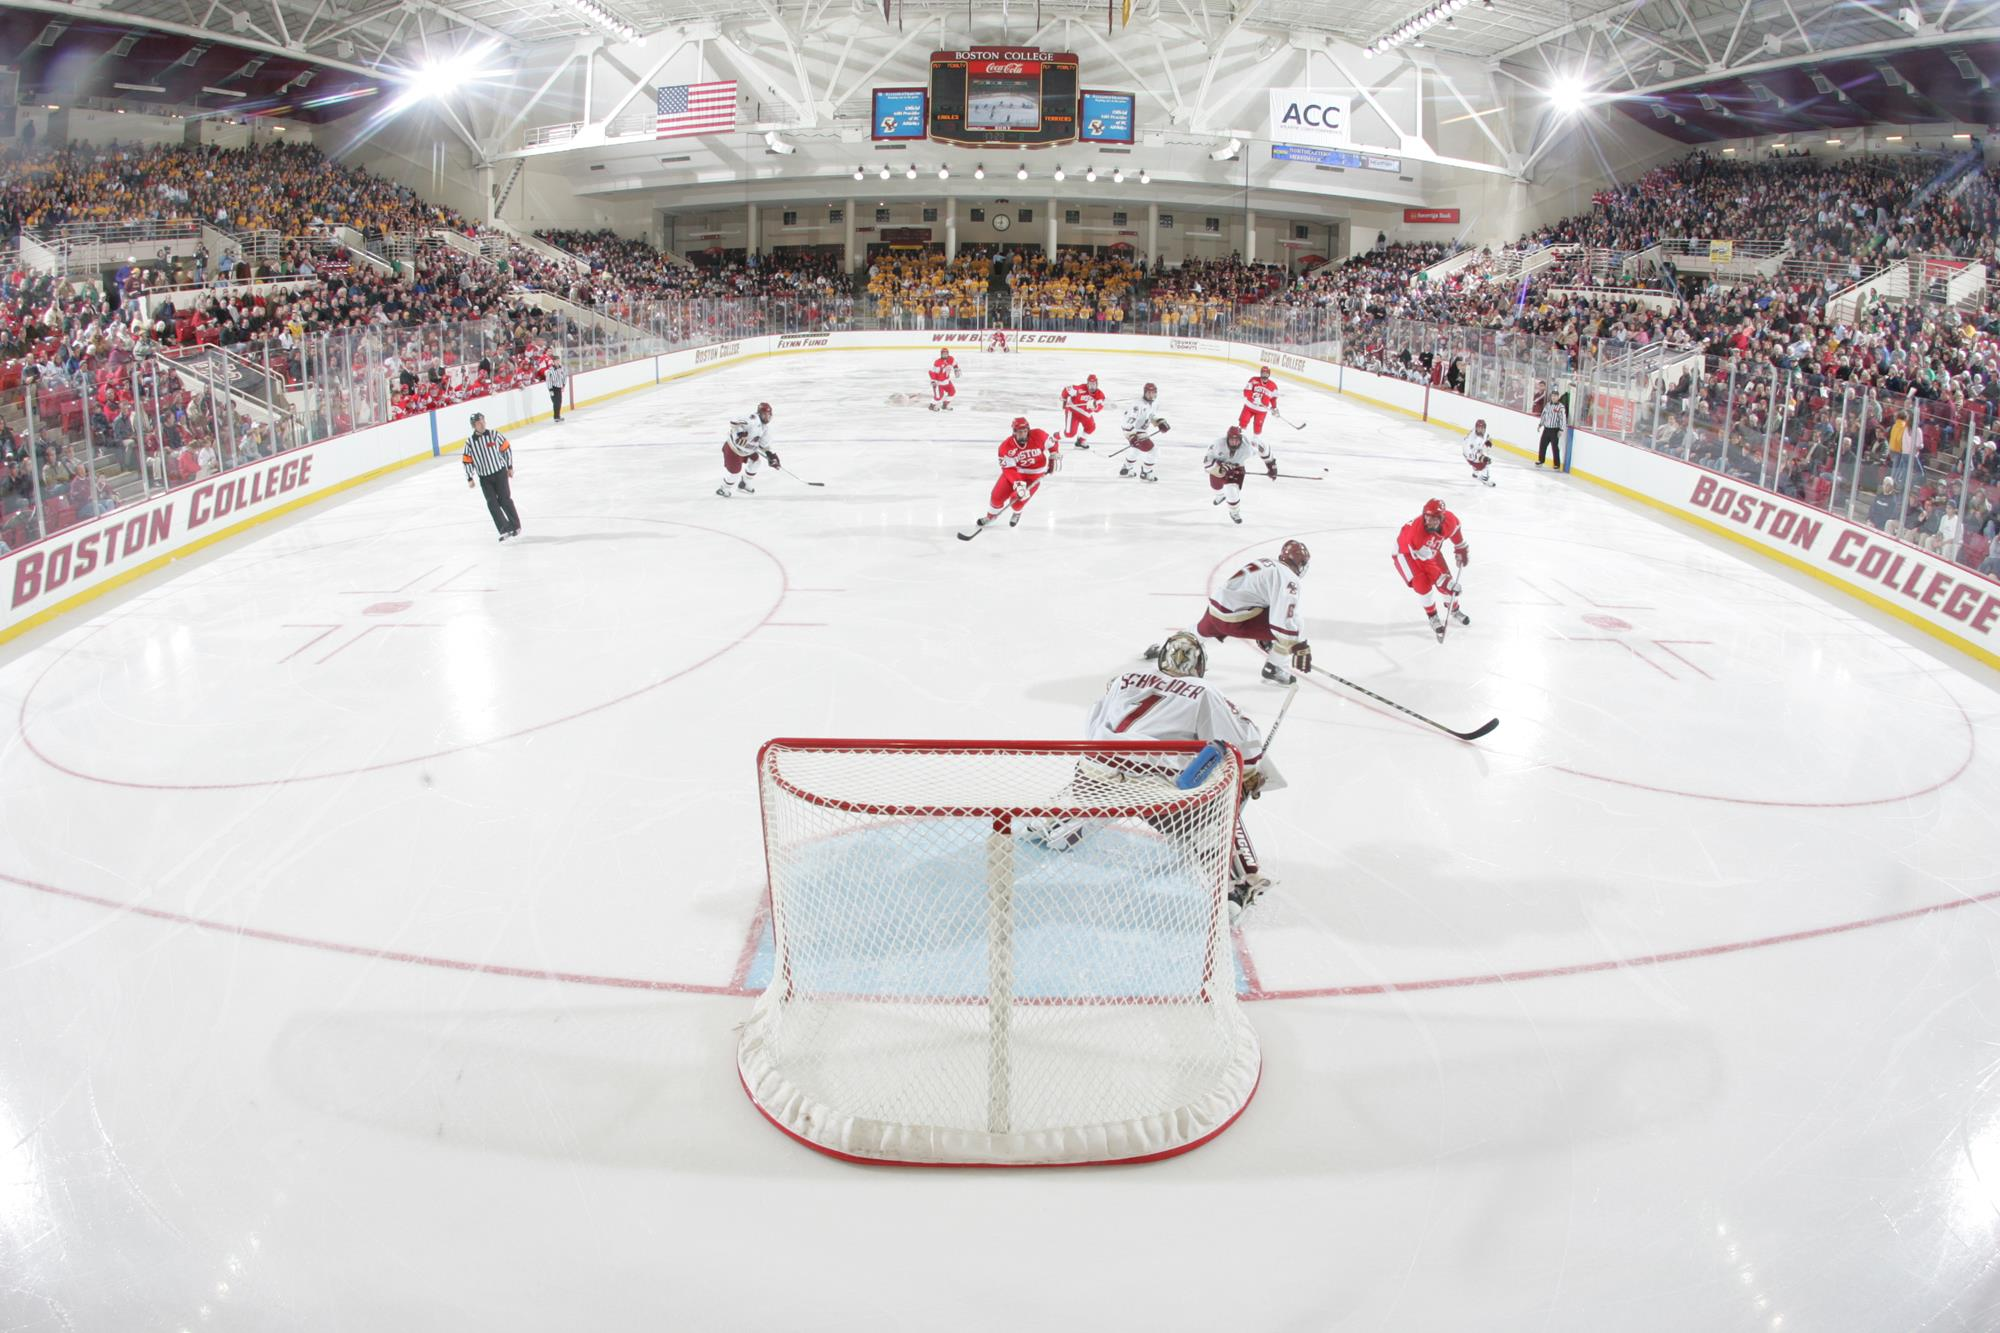 Image result for boston college hockey arena""